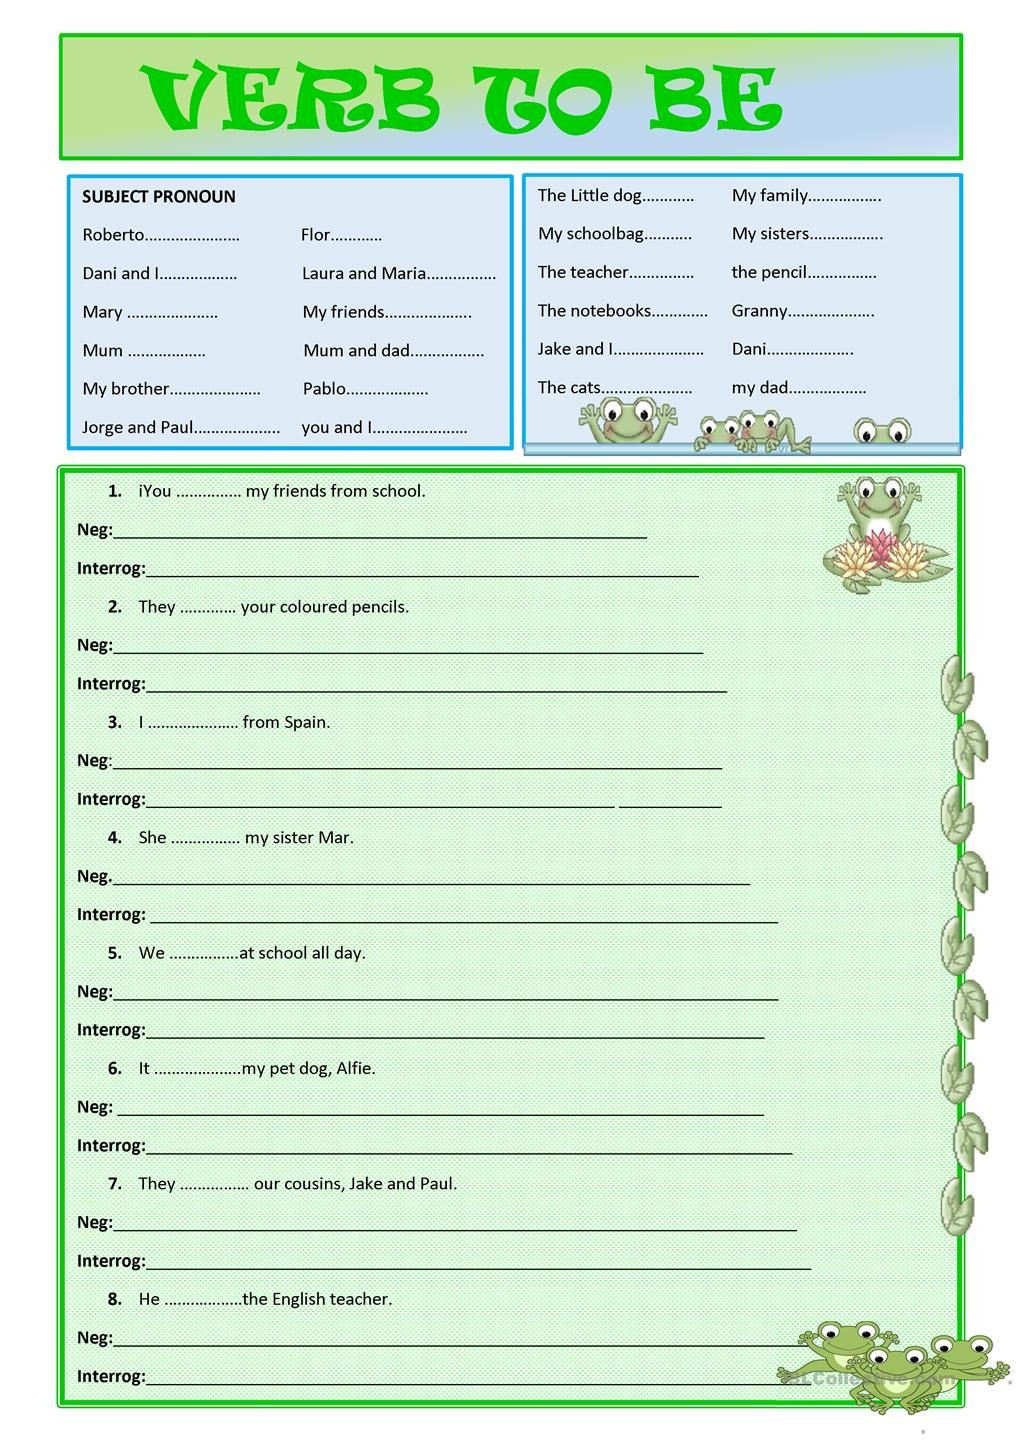 Spanish Subject Pronouns Worksheet